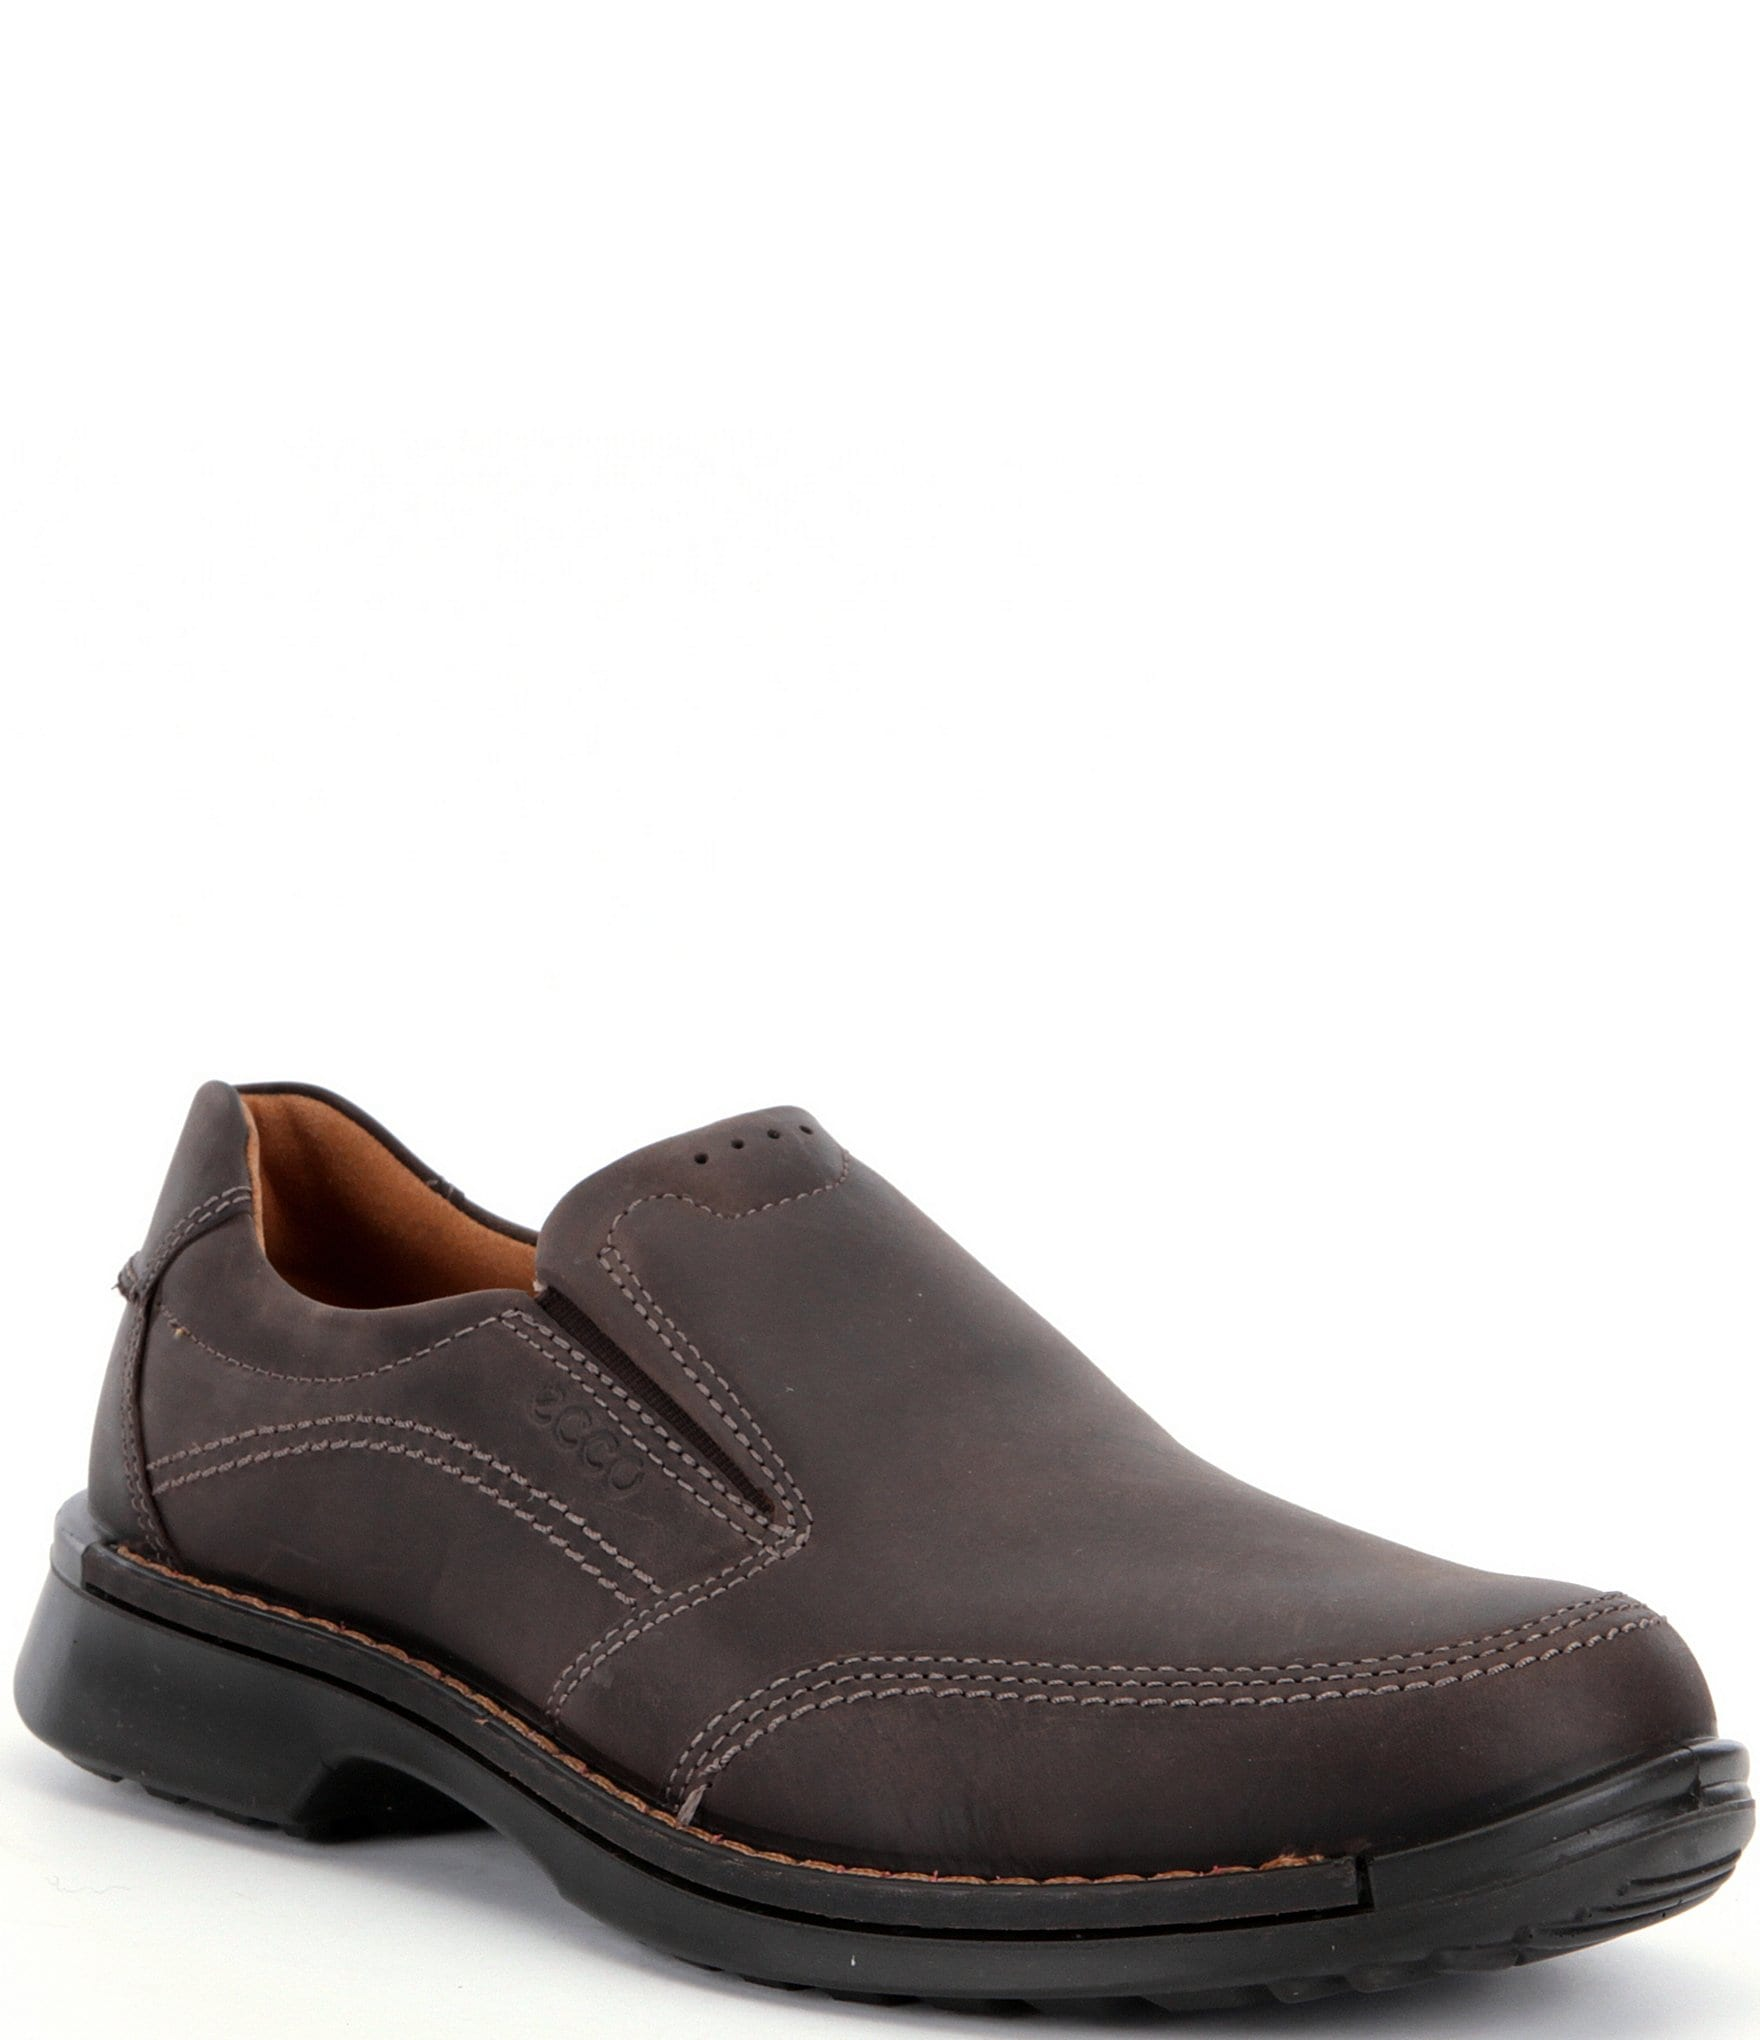 ECCO Men's Fusion II Perforated Leather Slip Ons | Dillard's